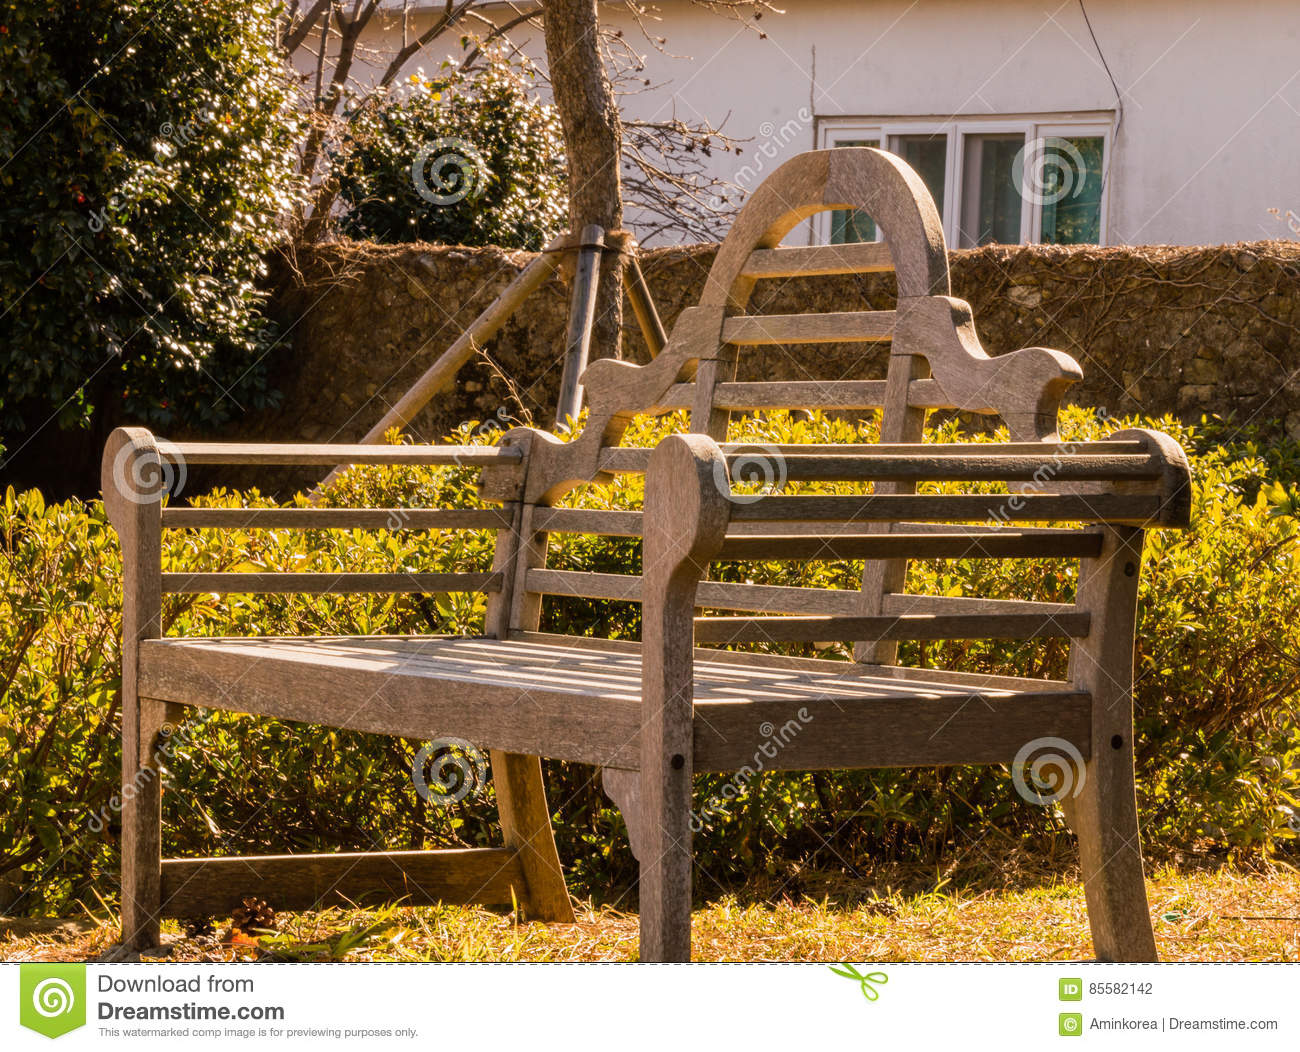 Park Bench In Bathed In Sunlight Stock Photo - Image of ...